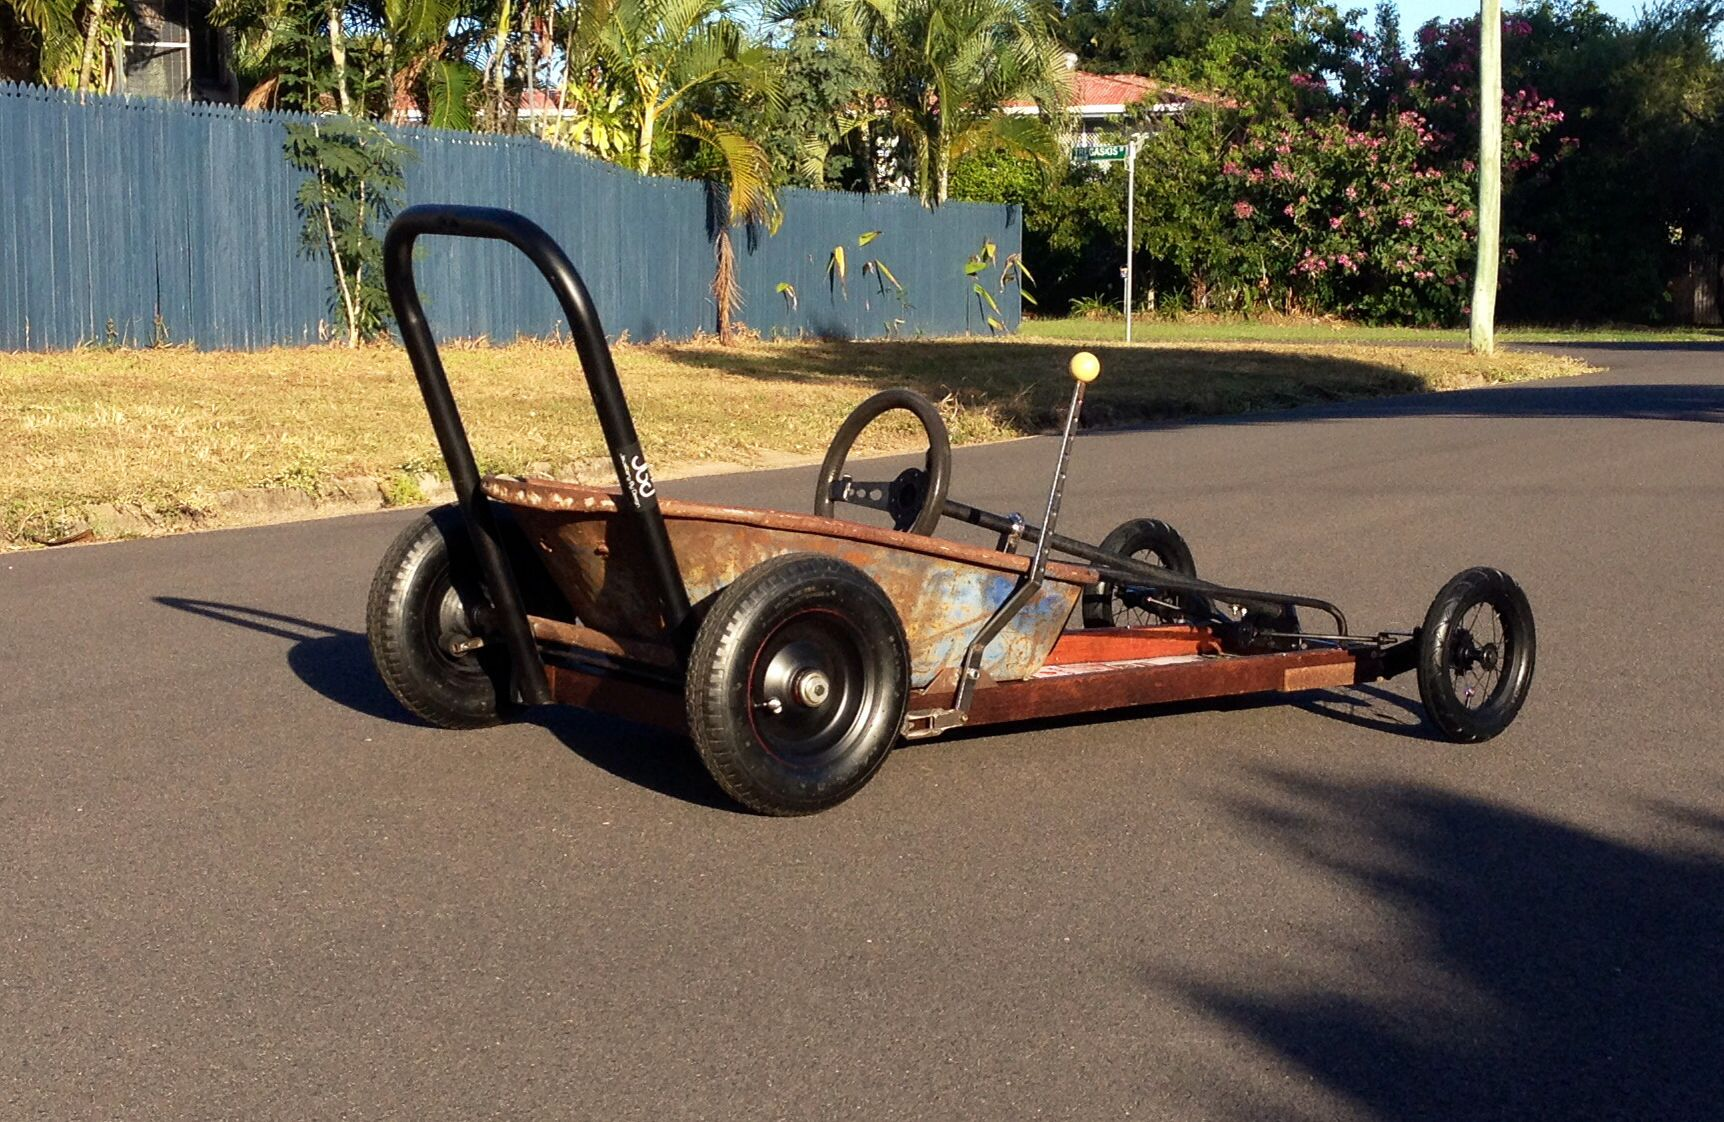 2014 townsville billy cart dash wheel barrow racer. slick